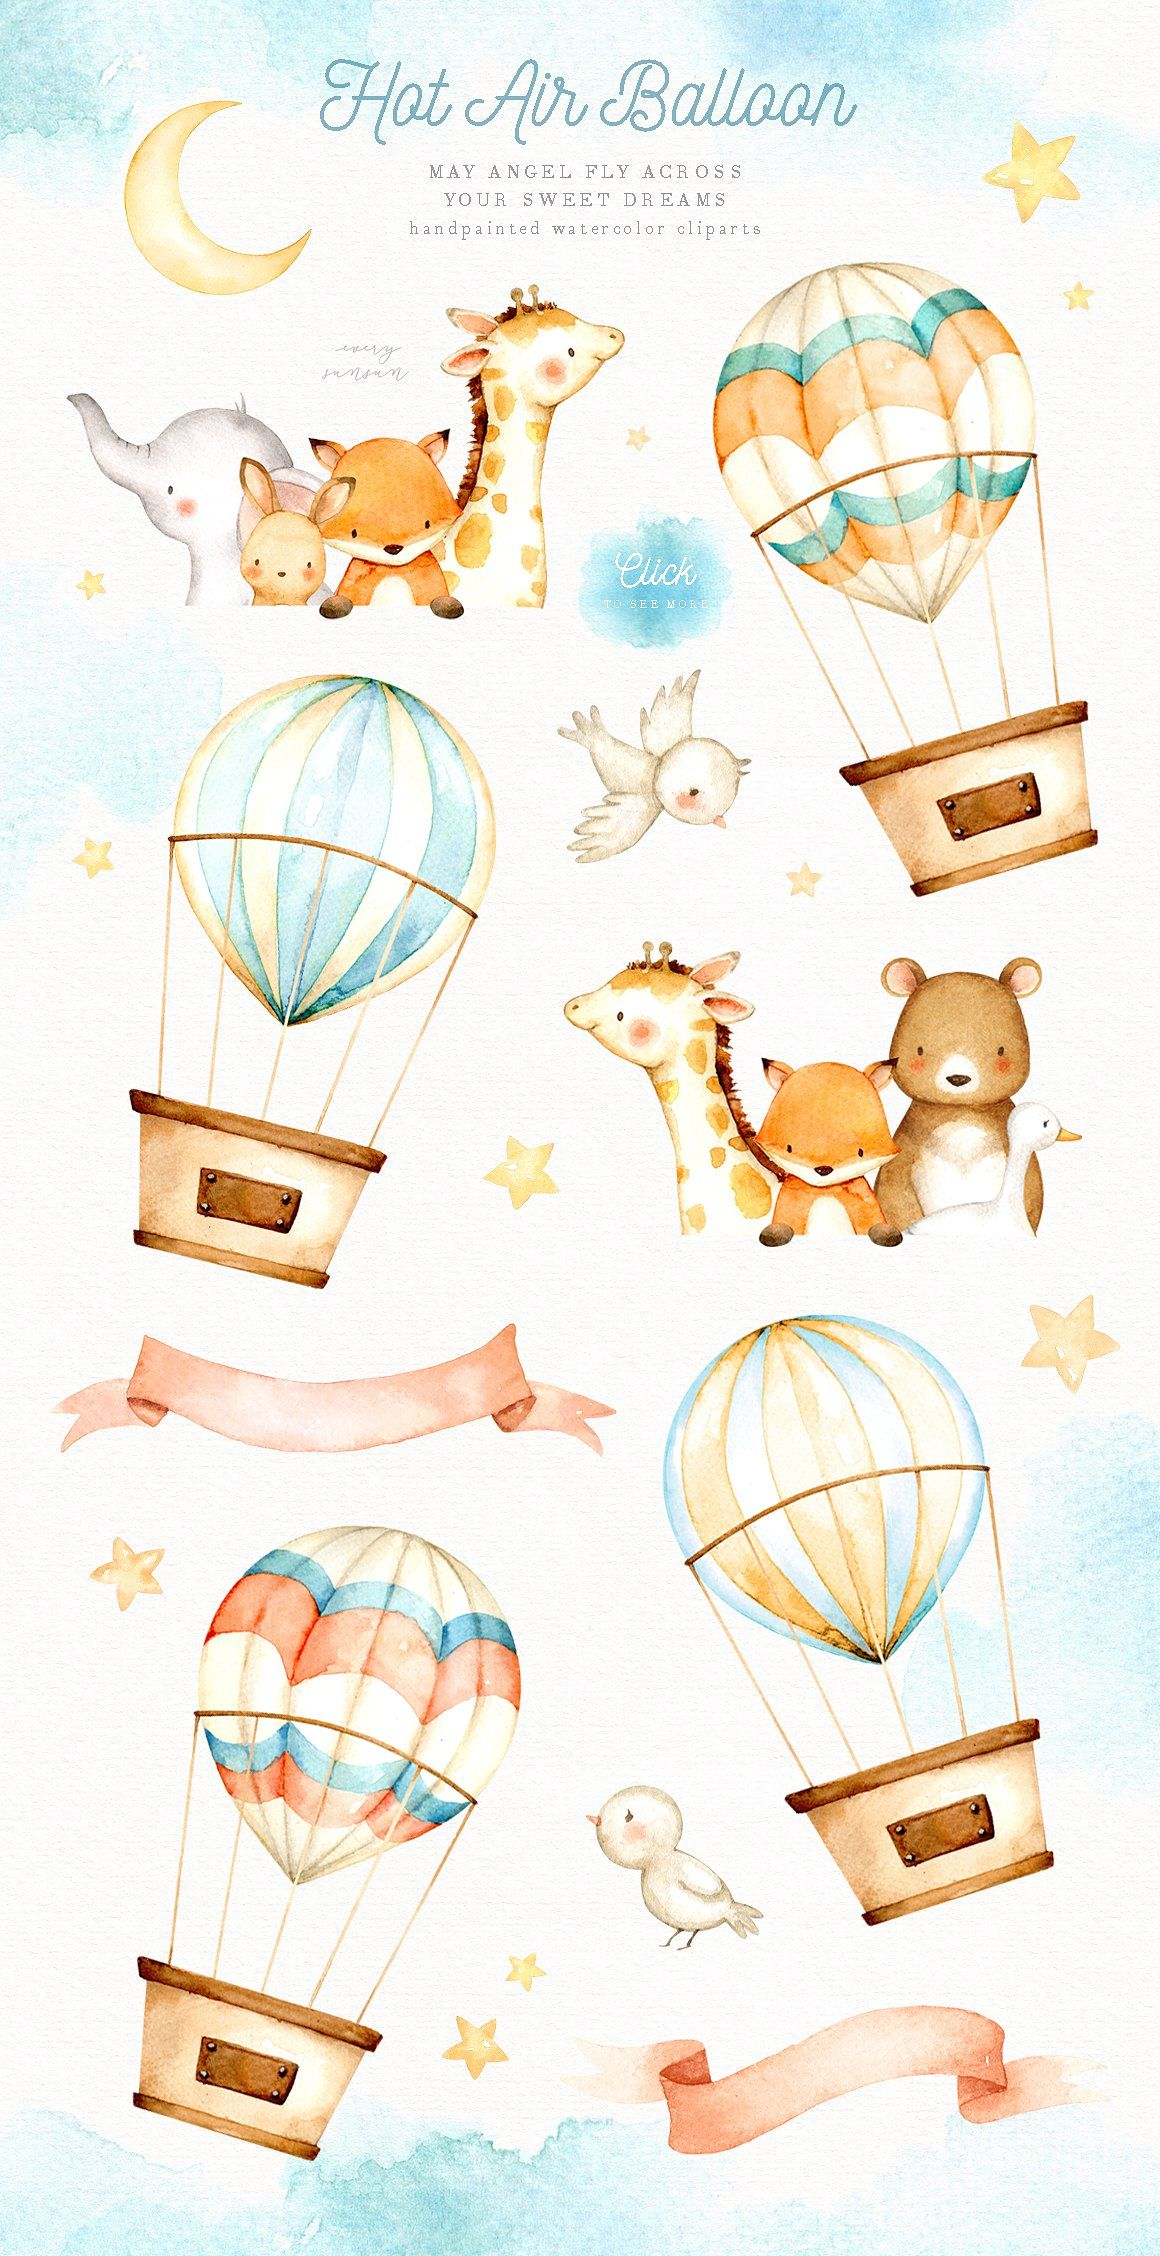 Hot Air Balloon Watercolor Clipart Illyustracii Detskie